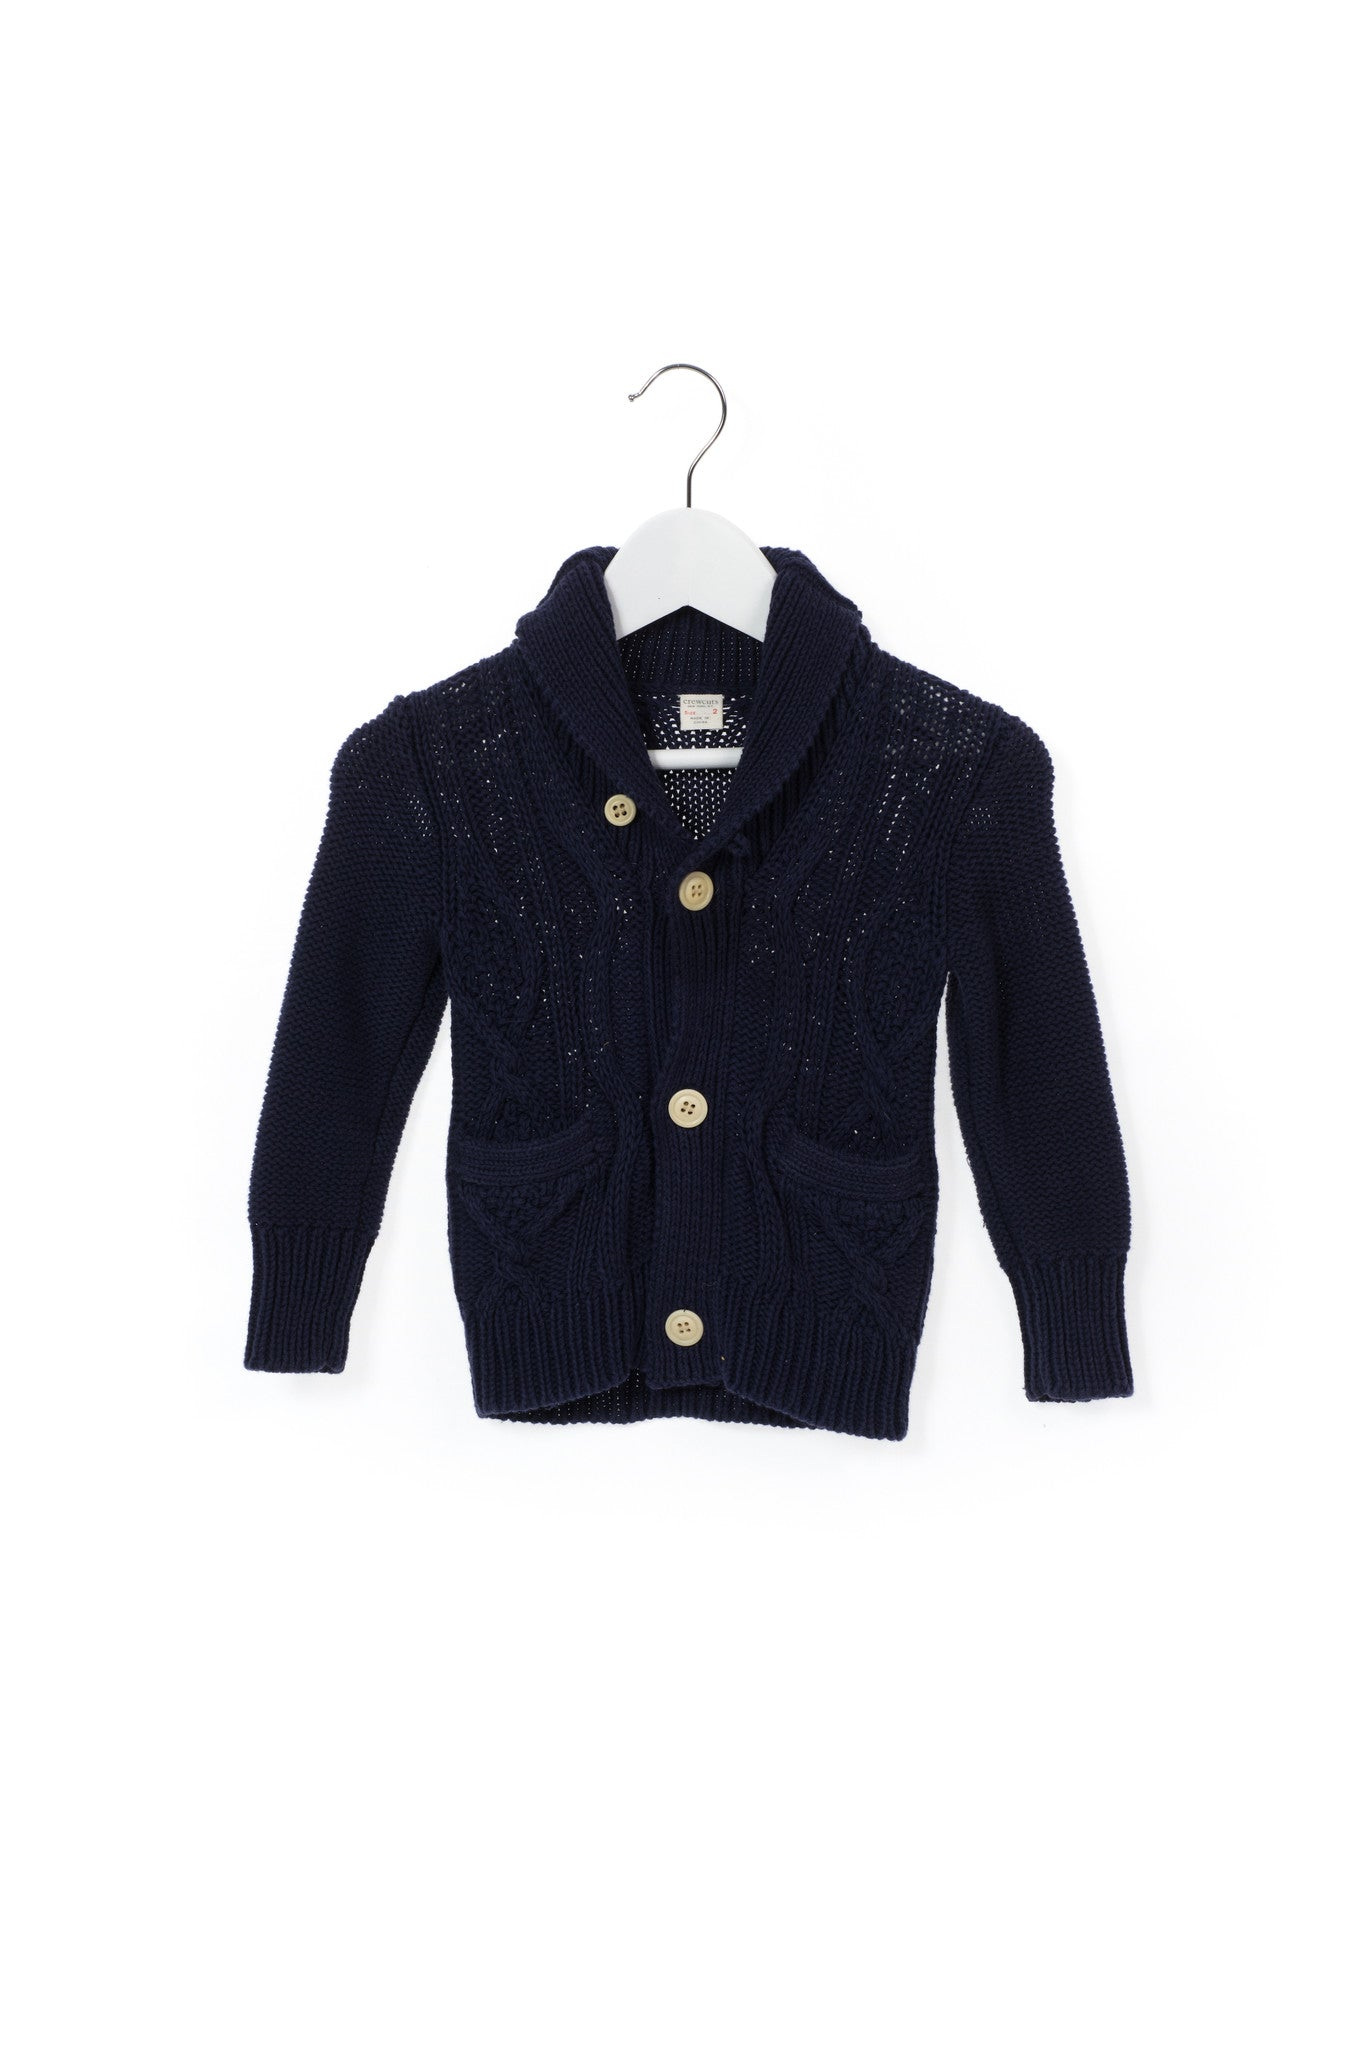 10001152 Crewcuts Kids~Cardigan 2T at Retykle